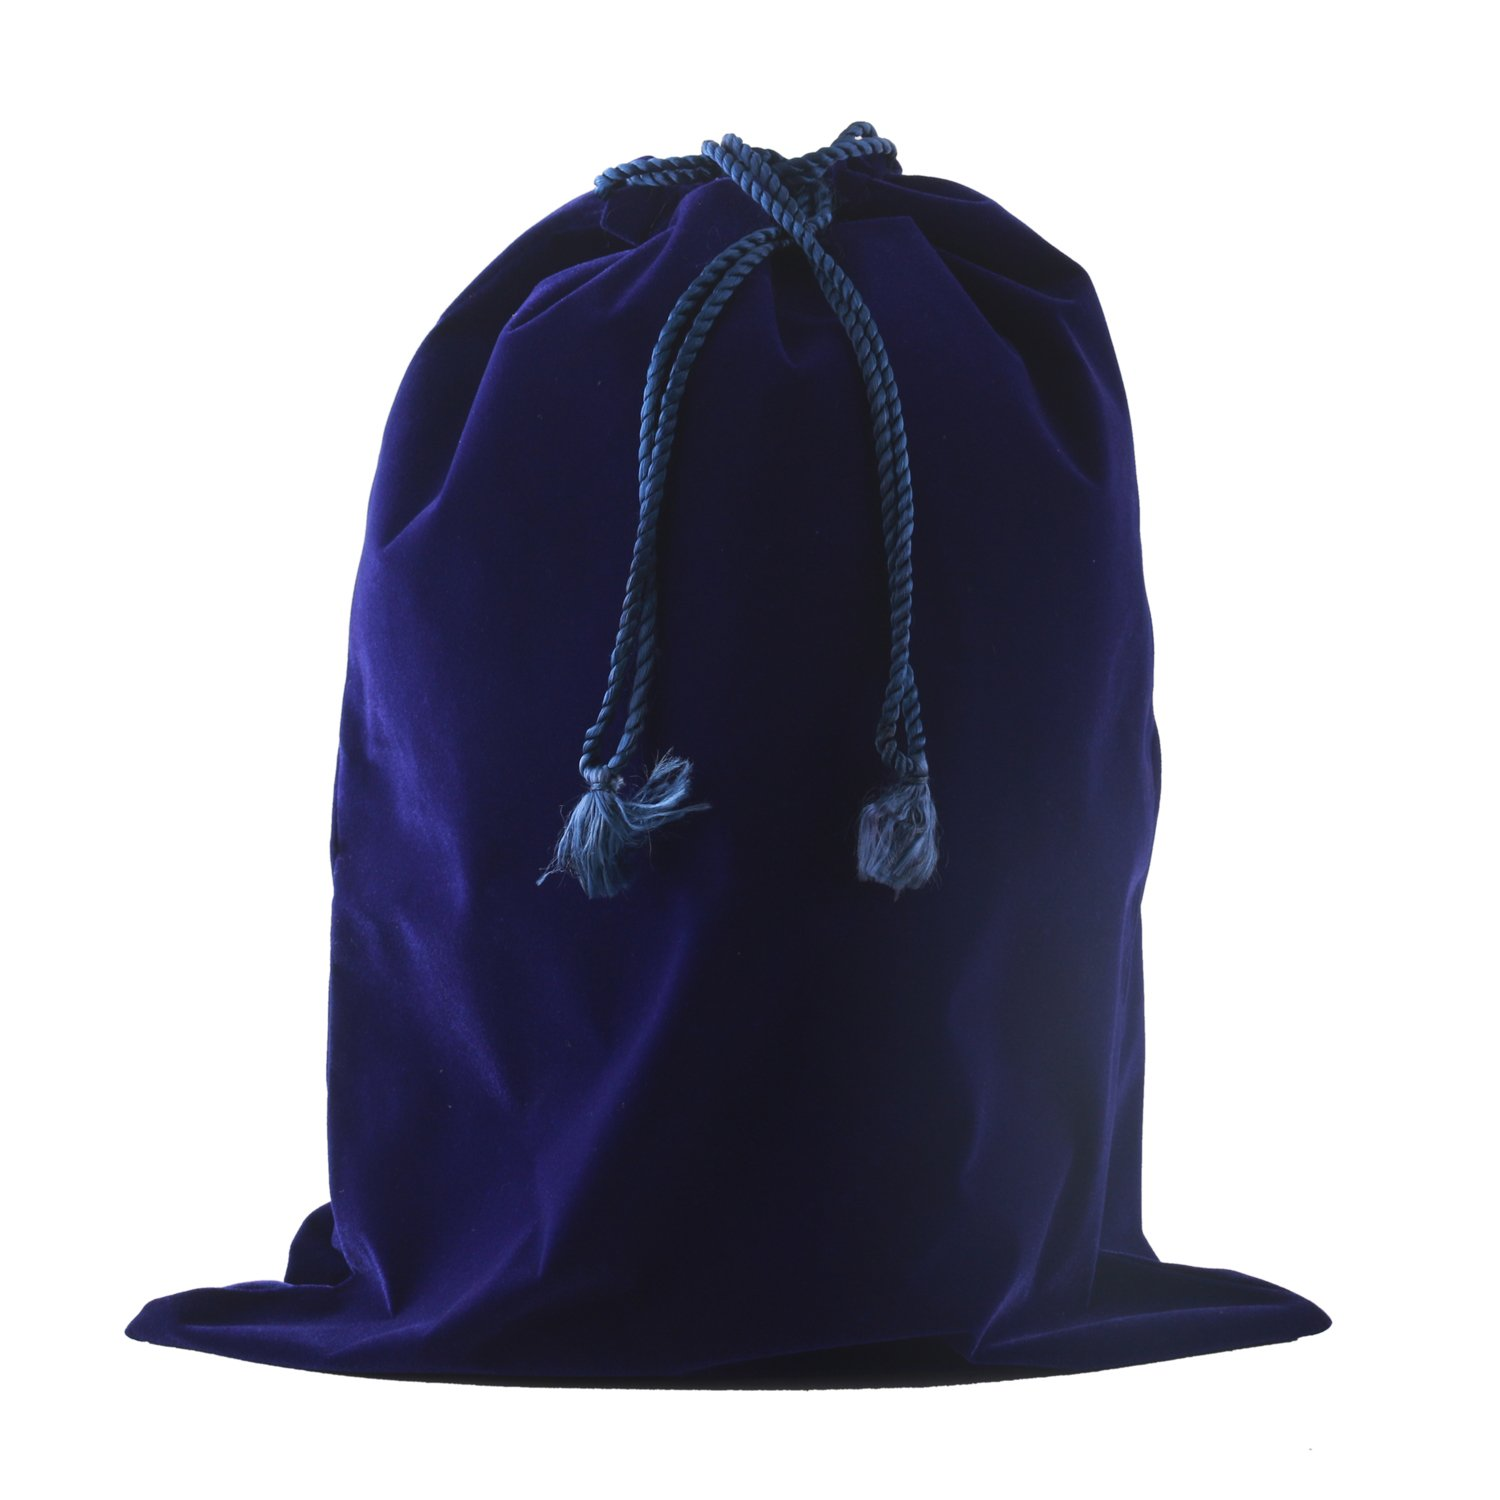 Premium Quality Velvet Urn Bag With Fancy Drawstring Closure (Royal Blue) - Blue Velvet Bag - Drawstring Velvet Bag